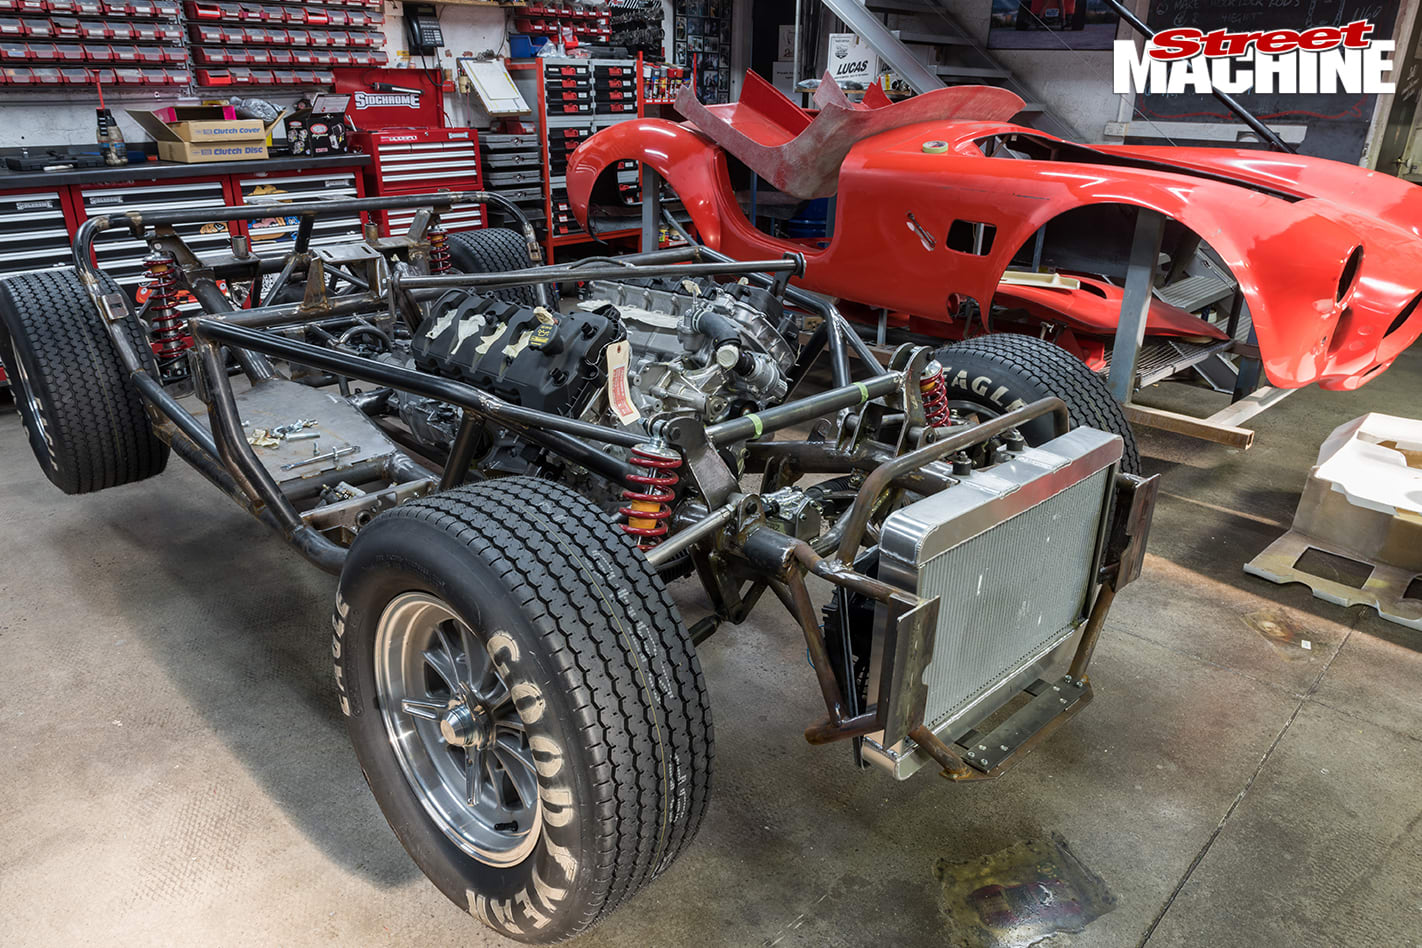 SIDCHROME-PROJECT-COBRA-PART-THREE-chassis